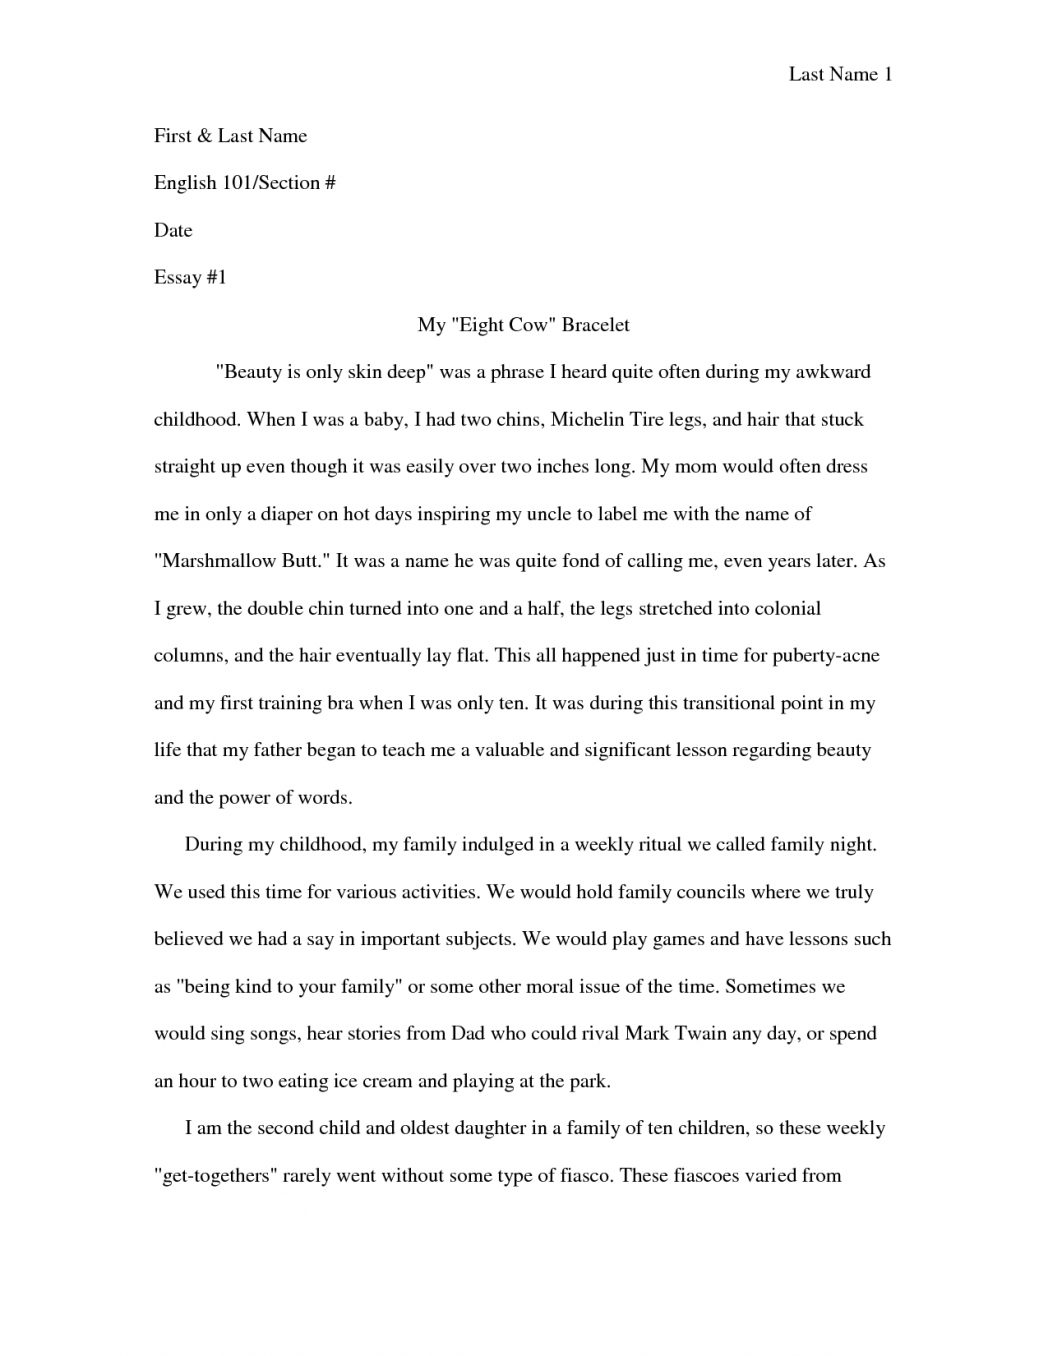 Narrative essay examples for college